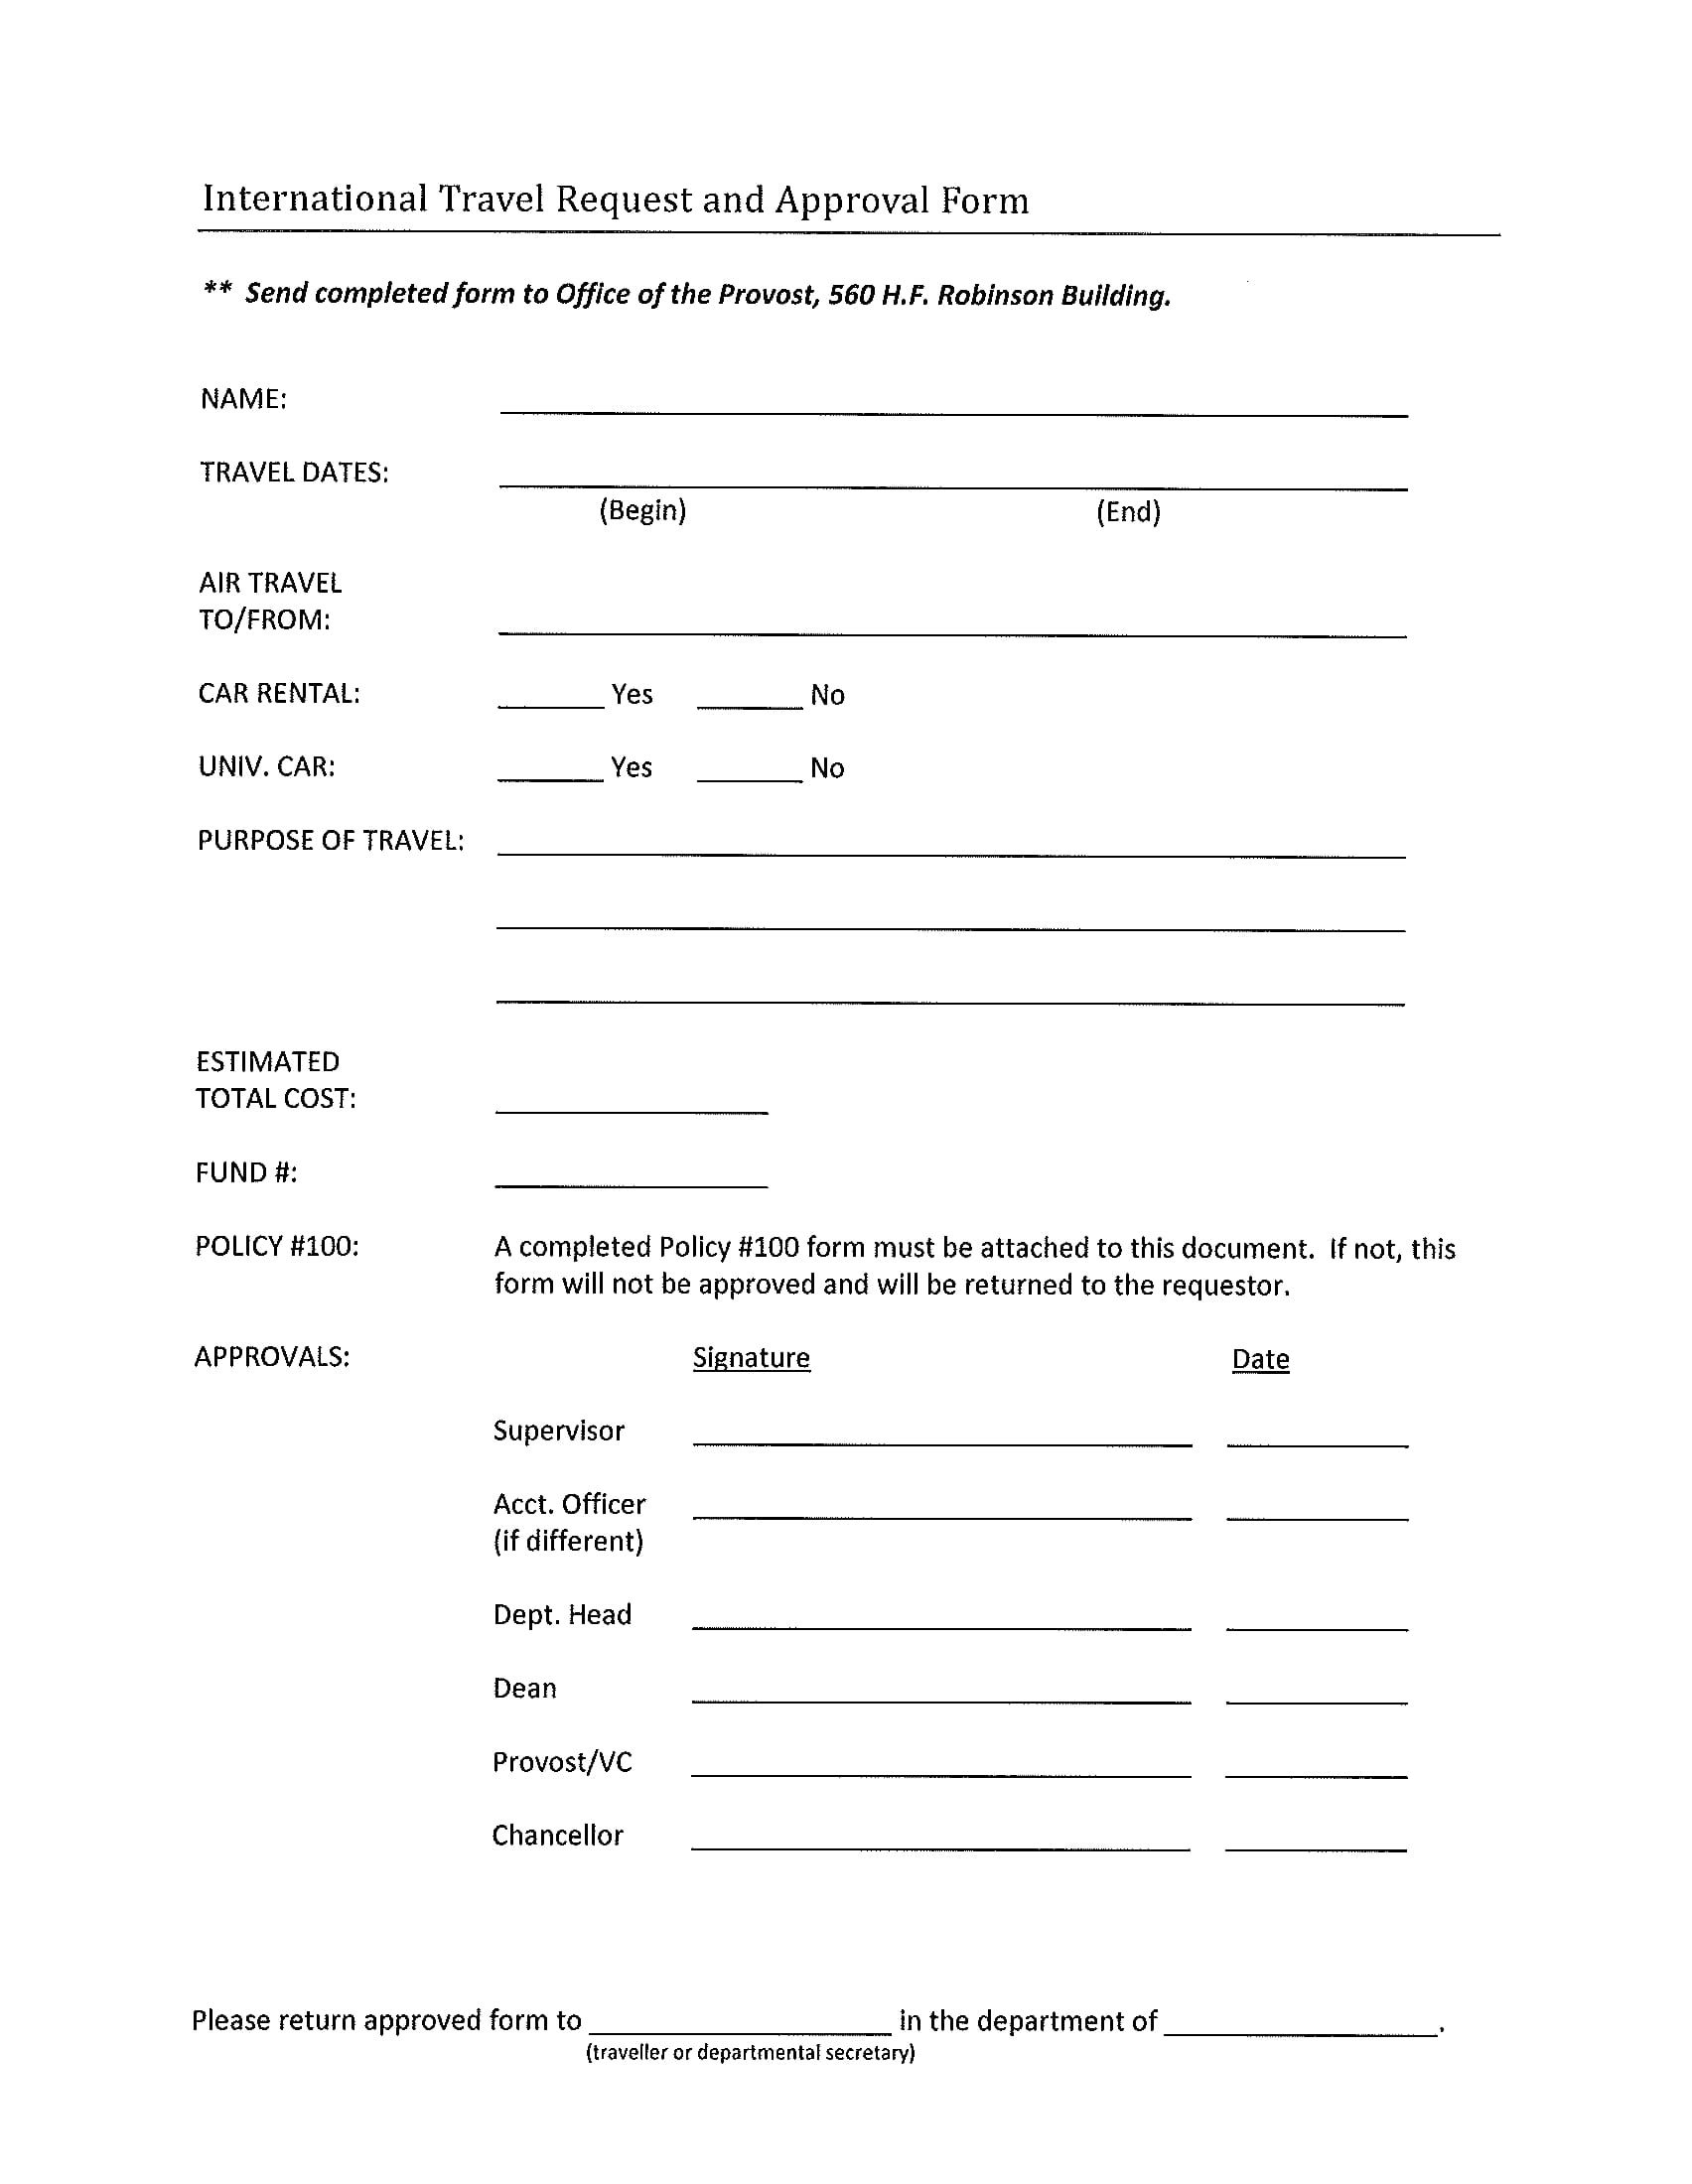 10 approval forms travel request and approval form event and international travel request approval form 1 thecheapjerseys Choice Image